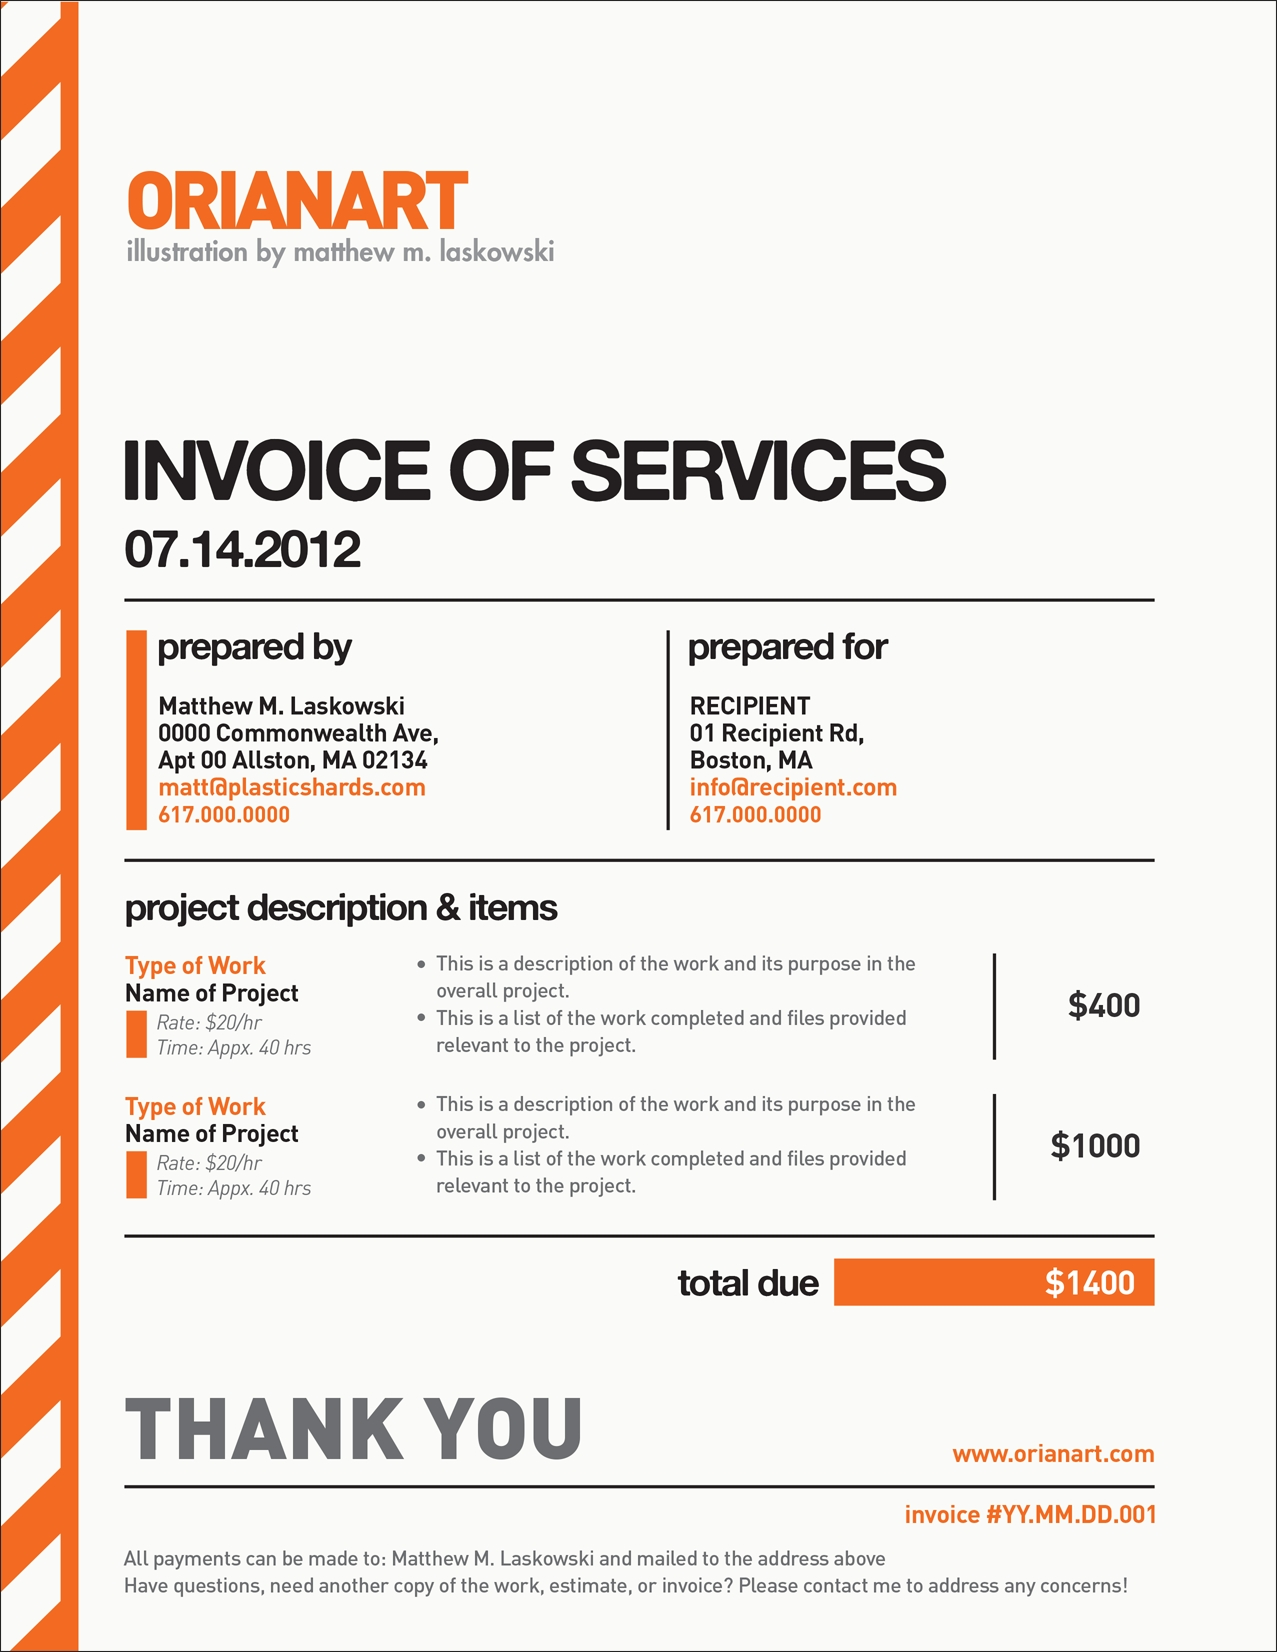 illustrator invoice template graphic art cool graphic designs free invoice template 1277 X 1652